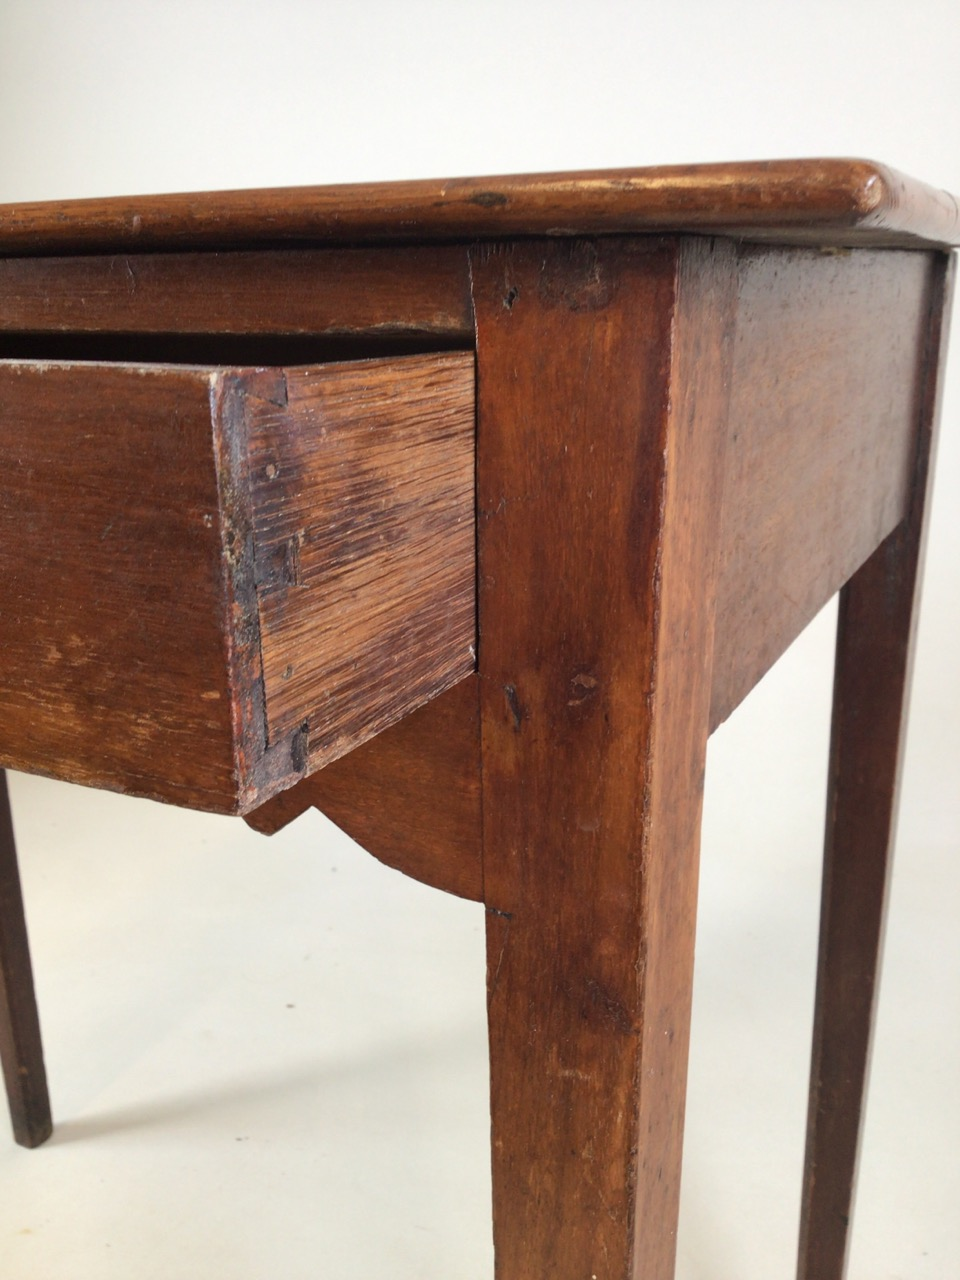 Small antique Georgian style side table with tapered legs with large central drawers and brass - Image 7 of 8